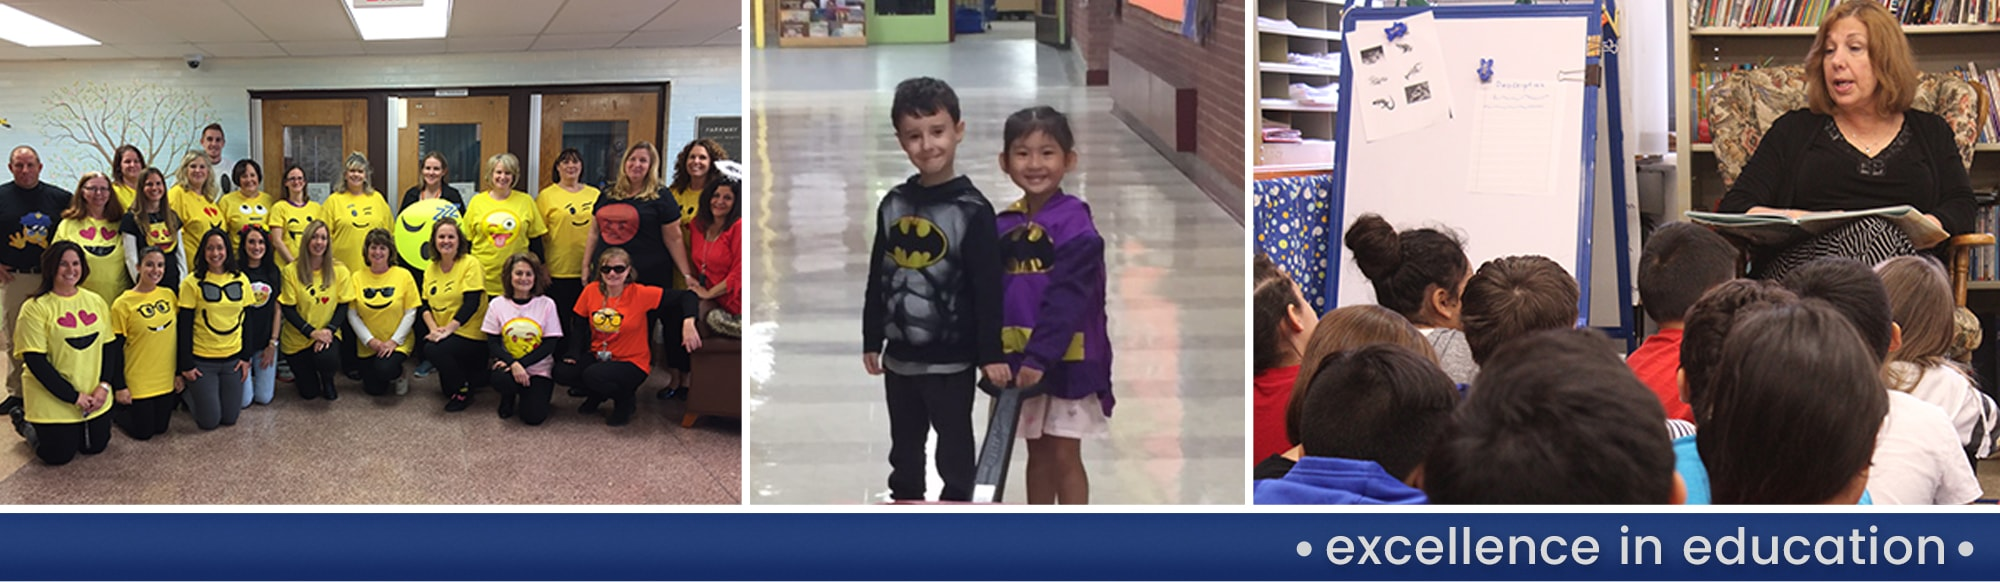 Teachers wearing emoji shirts pose together, two students wearing Batman attire pose together and a teacher reads to students in a classroom